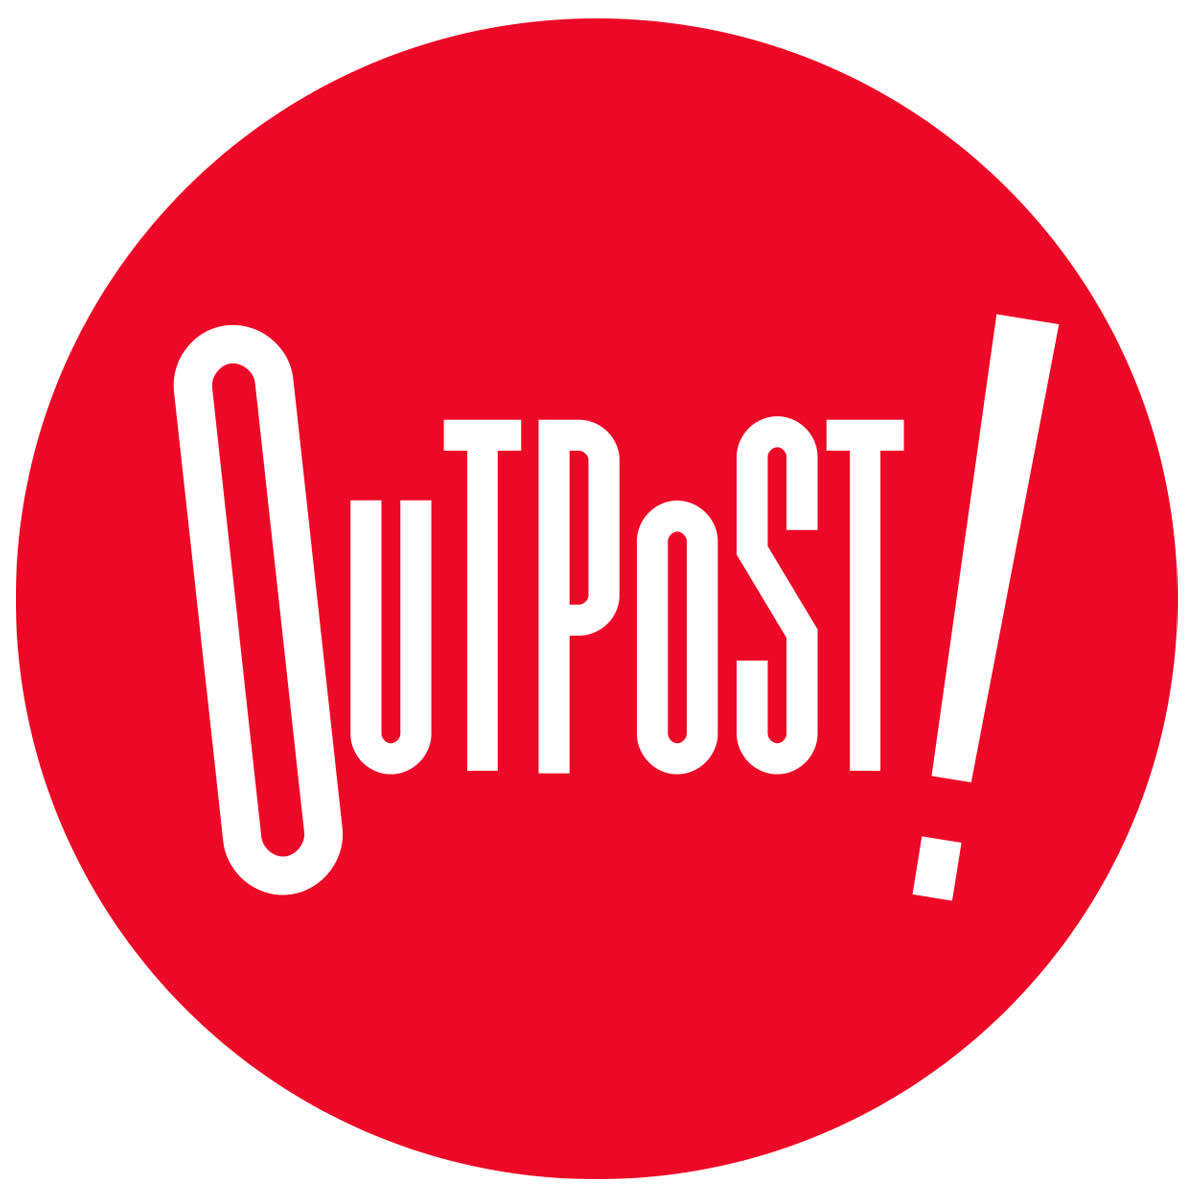 Image result for outpost space logo image